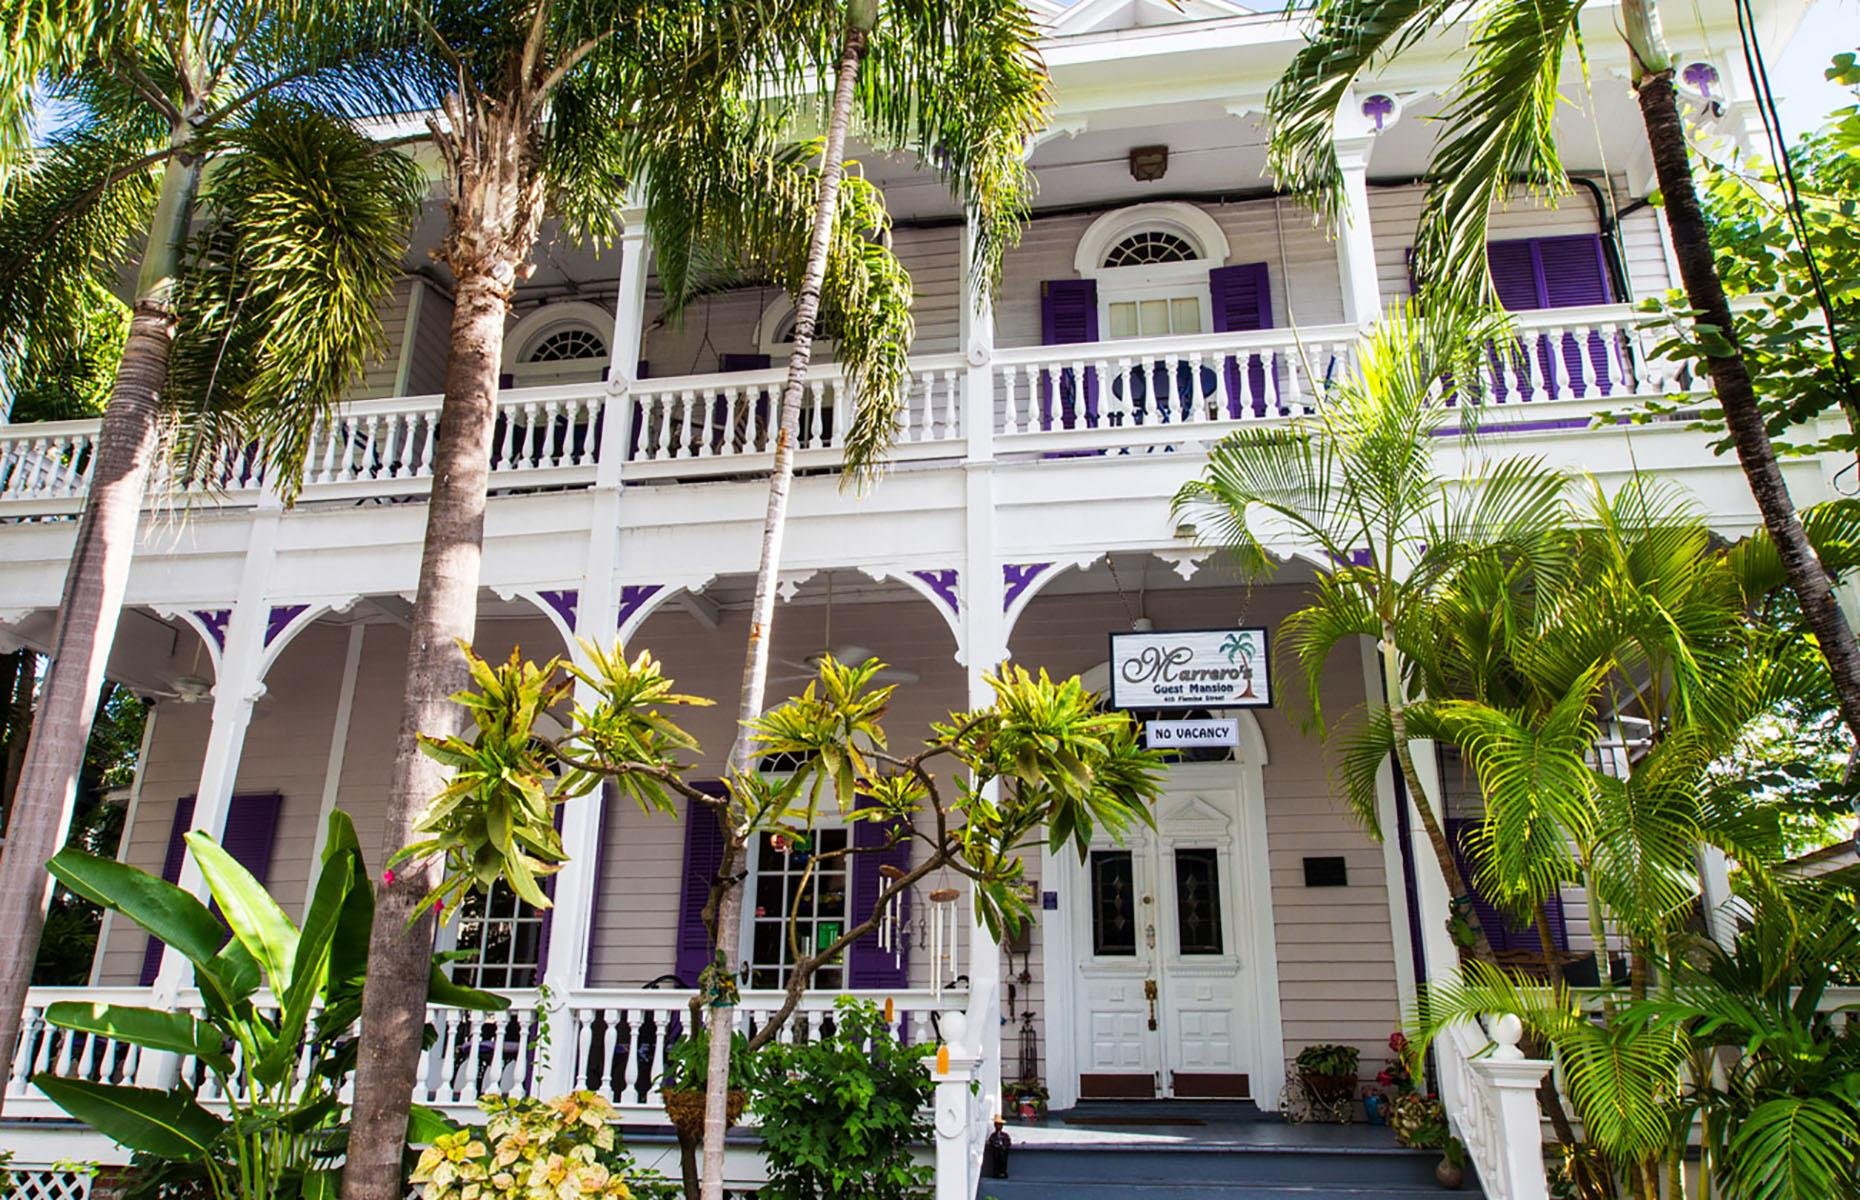 Slide 11 of 52: A Victorian mansion in the tropics? Yes, that's Marrero's. This lively B&B celebrates Key West in all its quirky glory – guests can typically expect access to a saltwater pool and fragrant gardens, as well as a daily happy hour on the front porch. Beyond the front door and just around the corner unfolds Duval Street, the main drag of one of Florida's – if not the country's – most colorful, rebellious islands. You can find travel advisories for the Keys here.